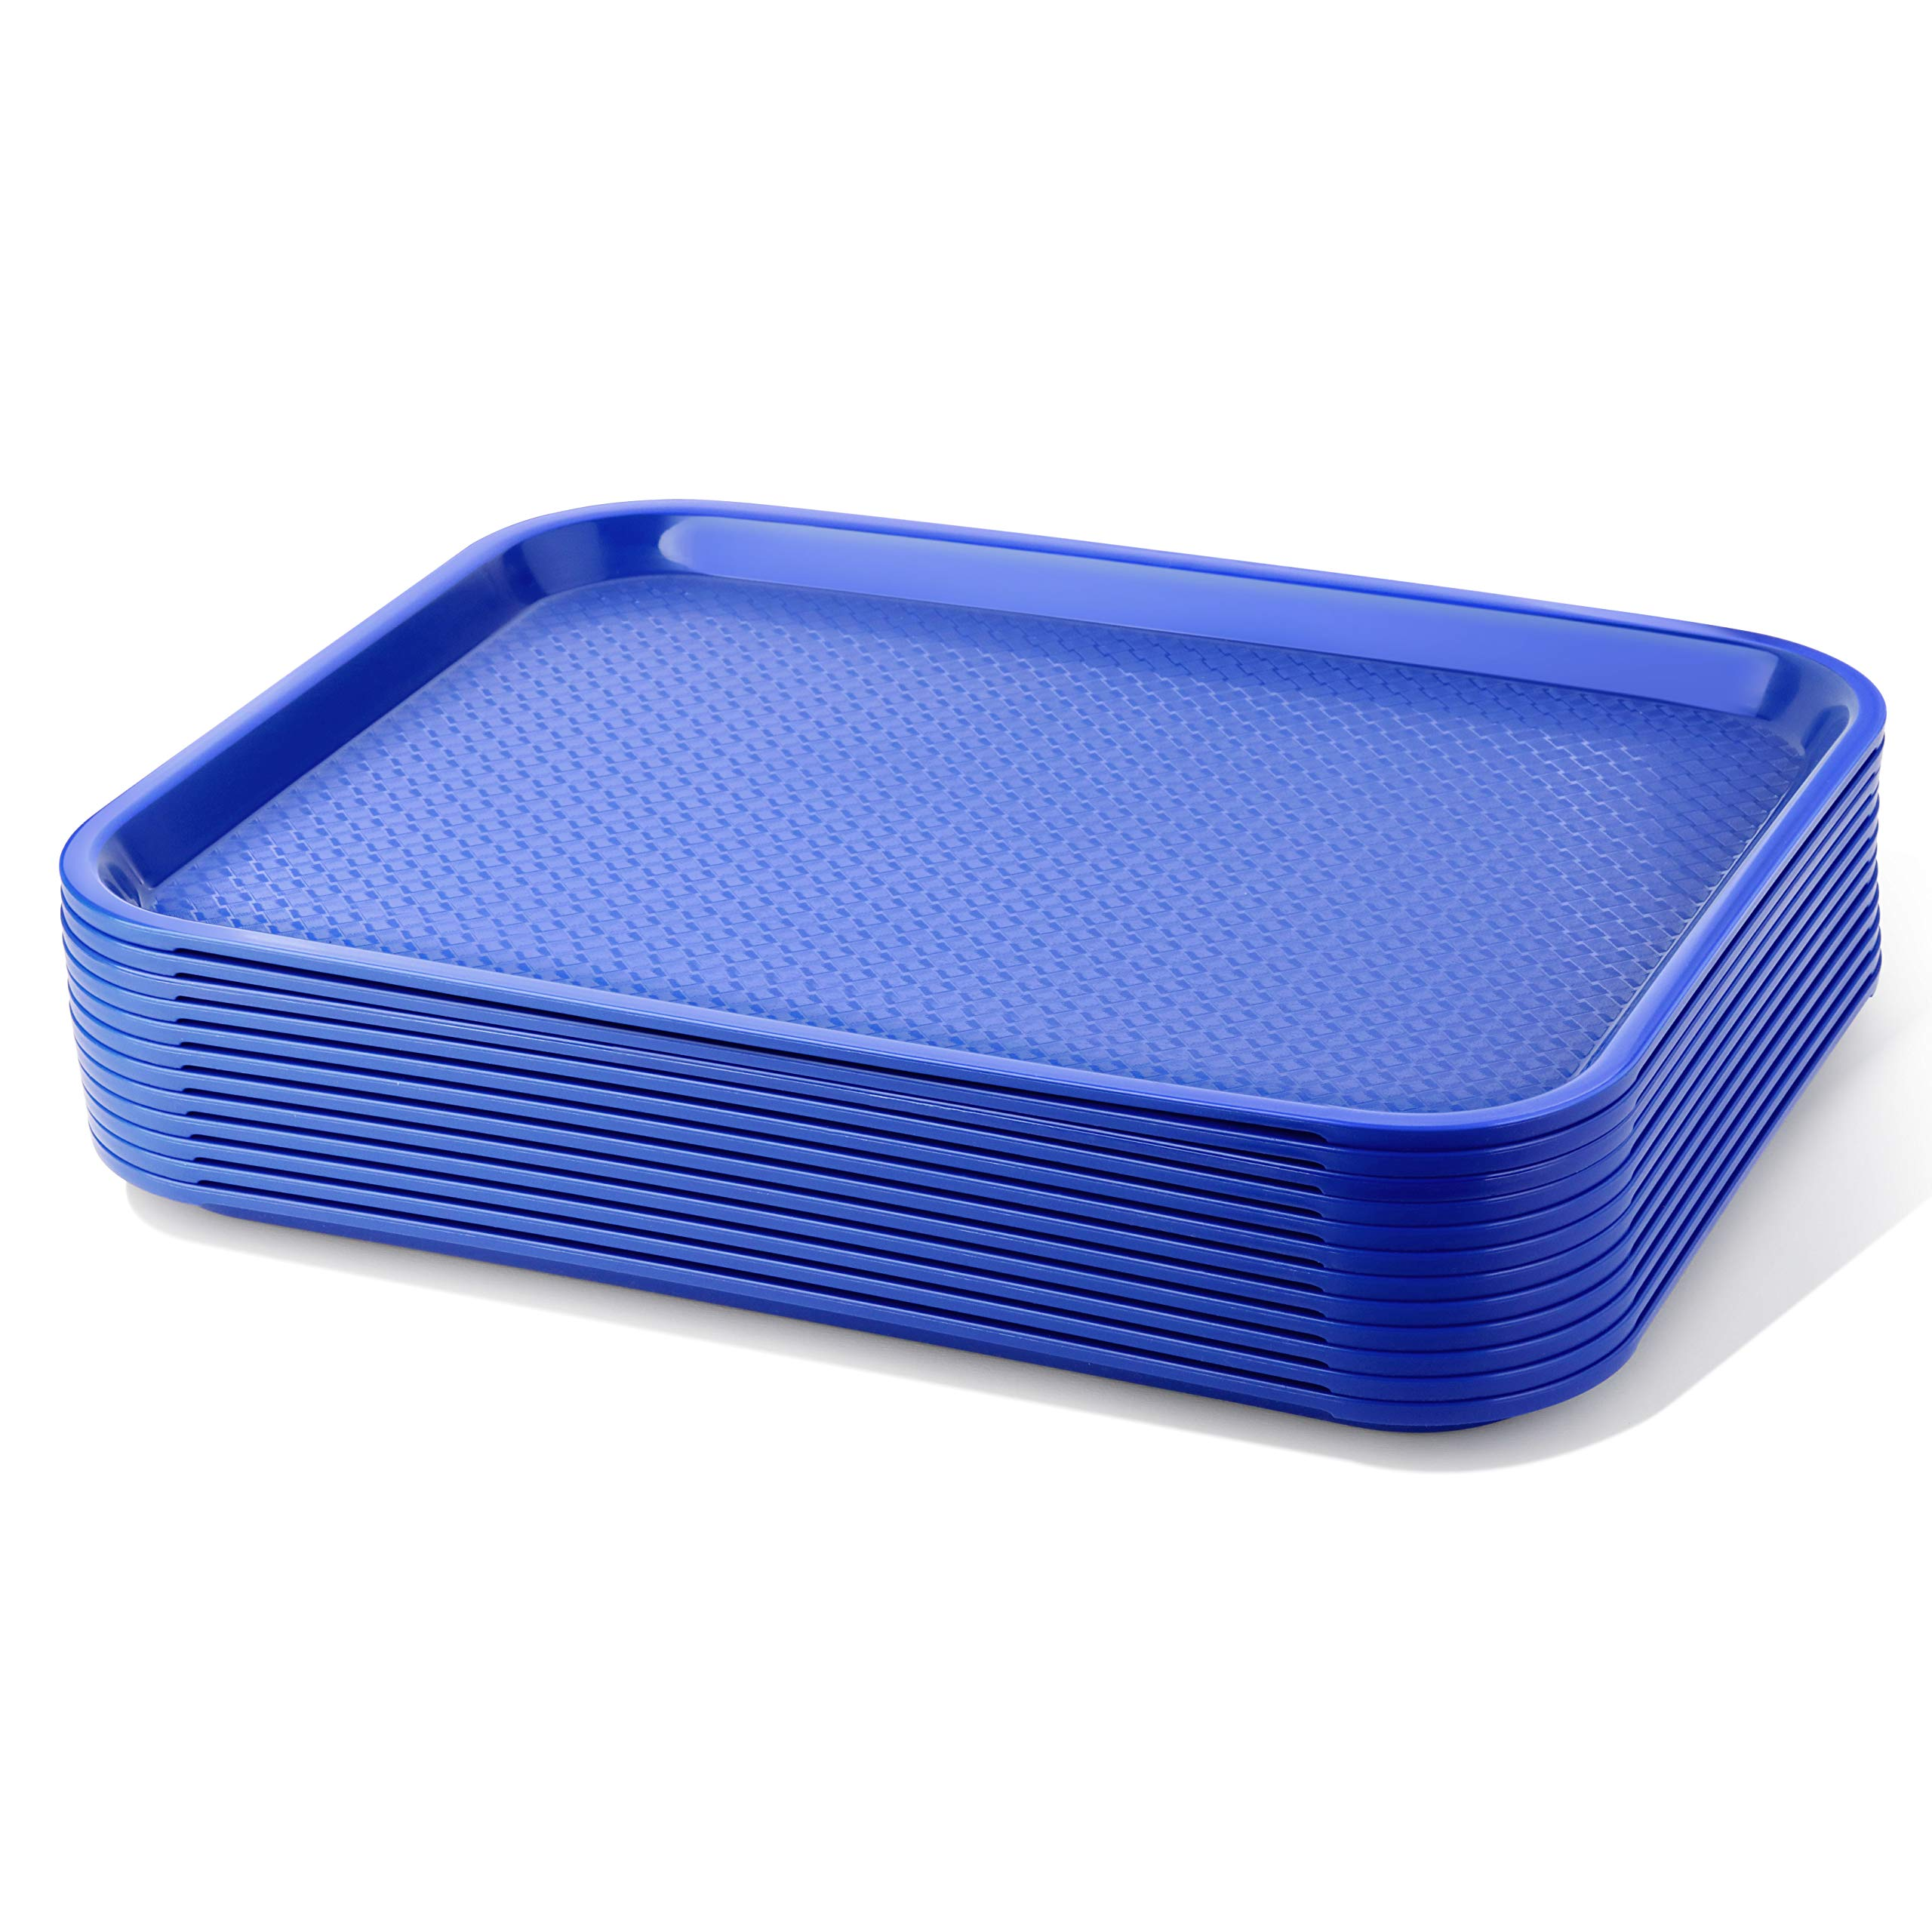 New Star Foodservice 24722 Fast Food Tray, 14 by 18-Inch, Blue, Set of 12